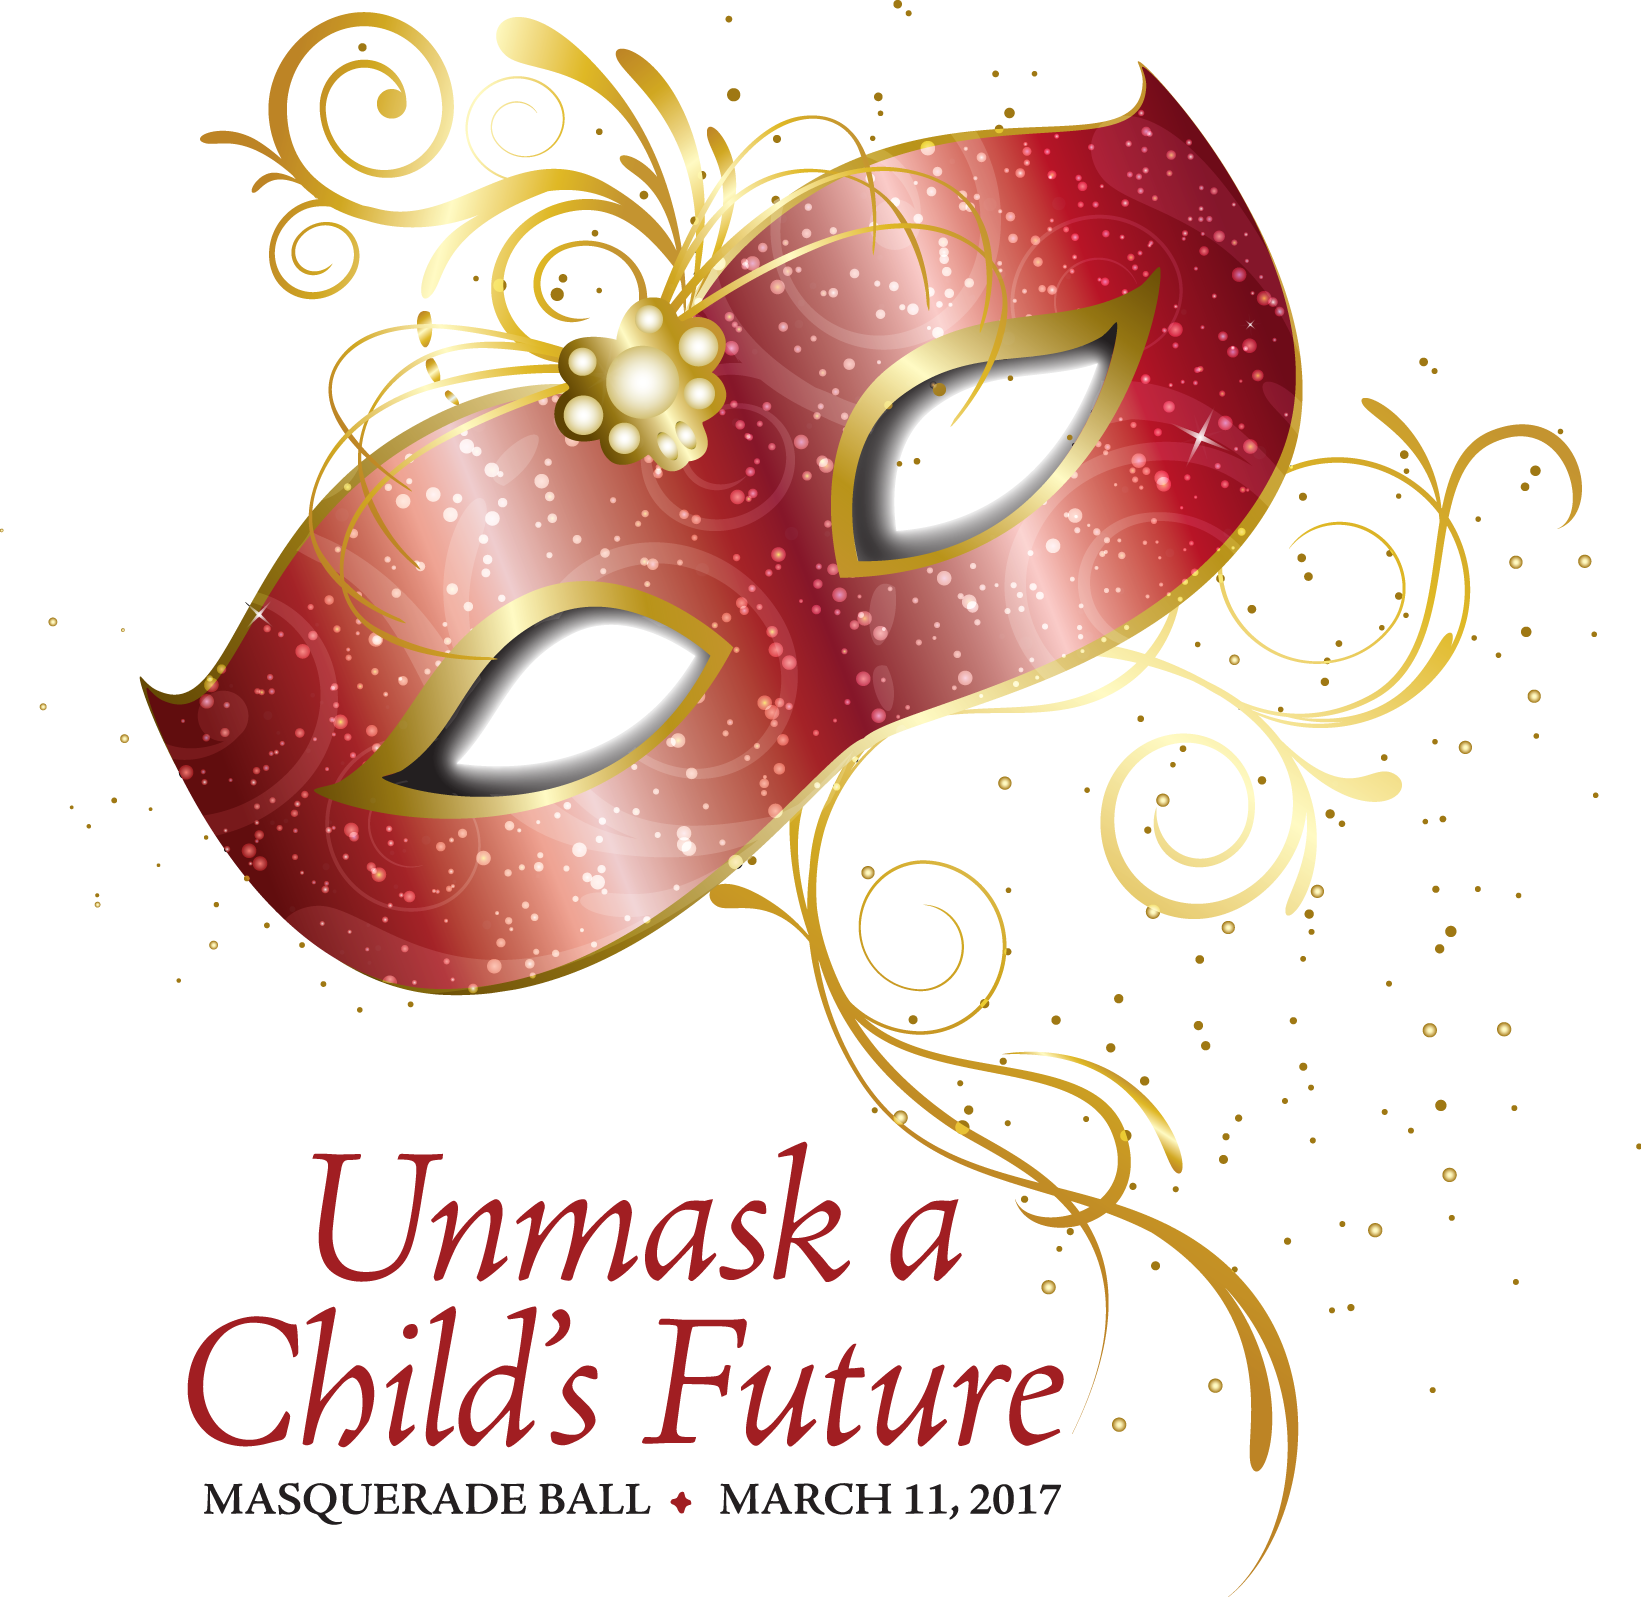 Masquerade ball png. Comcast newsmakers features upcoming